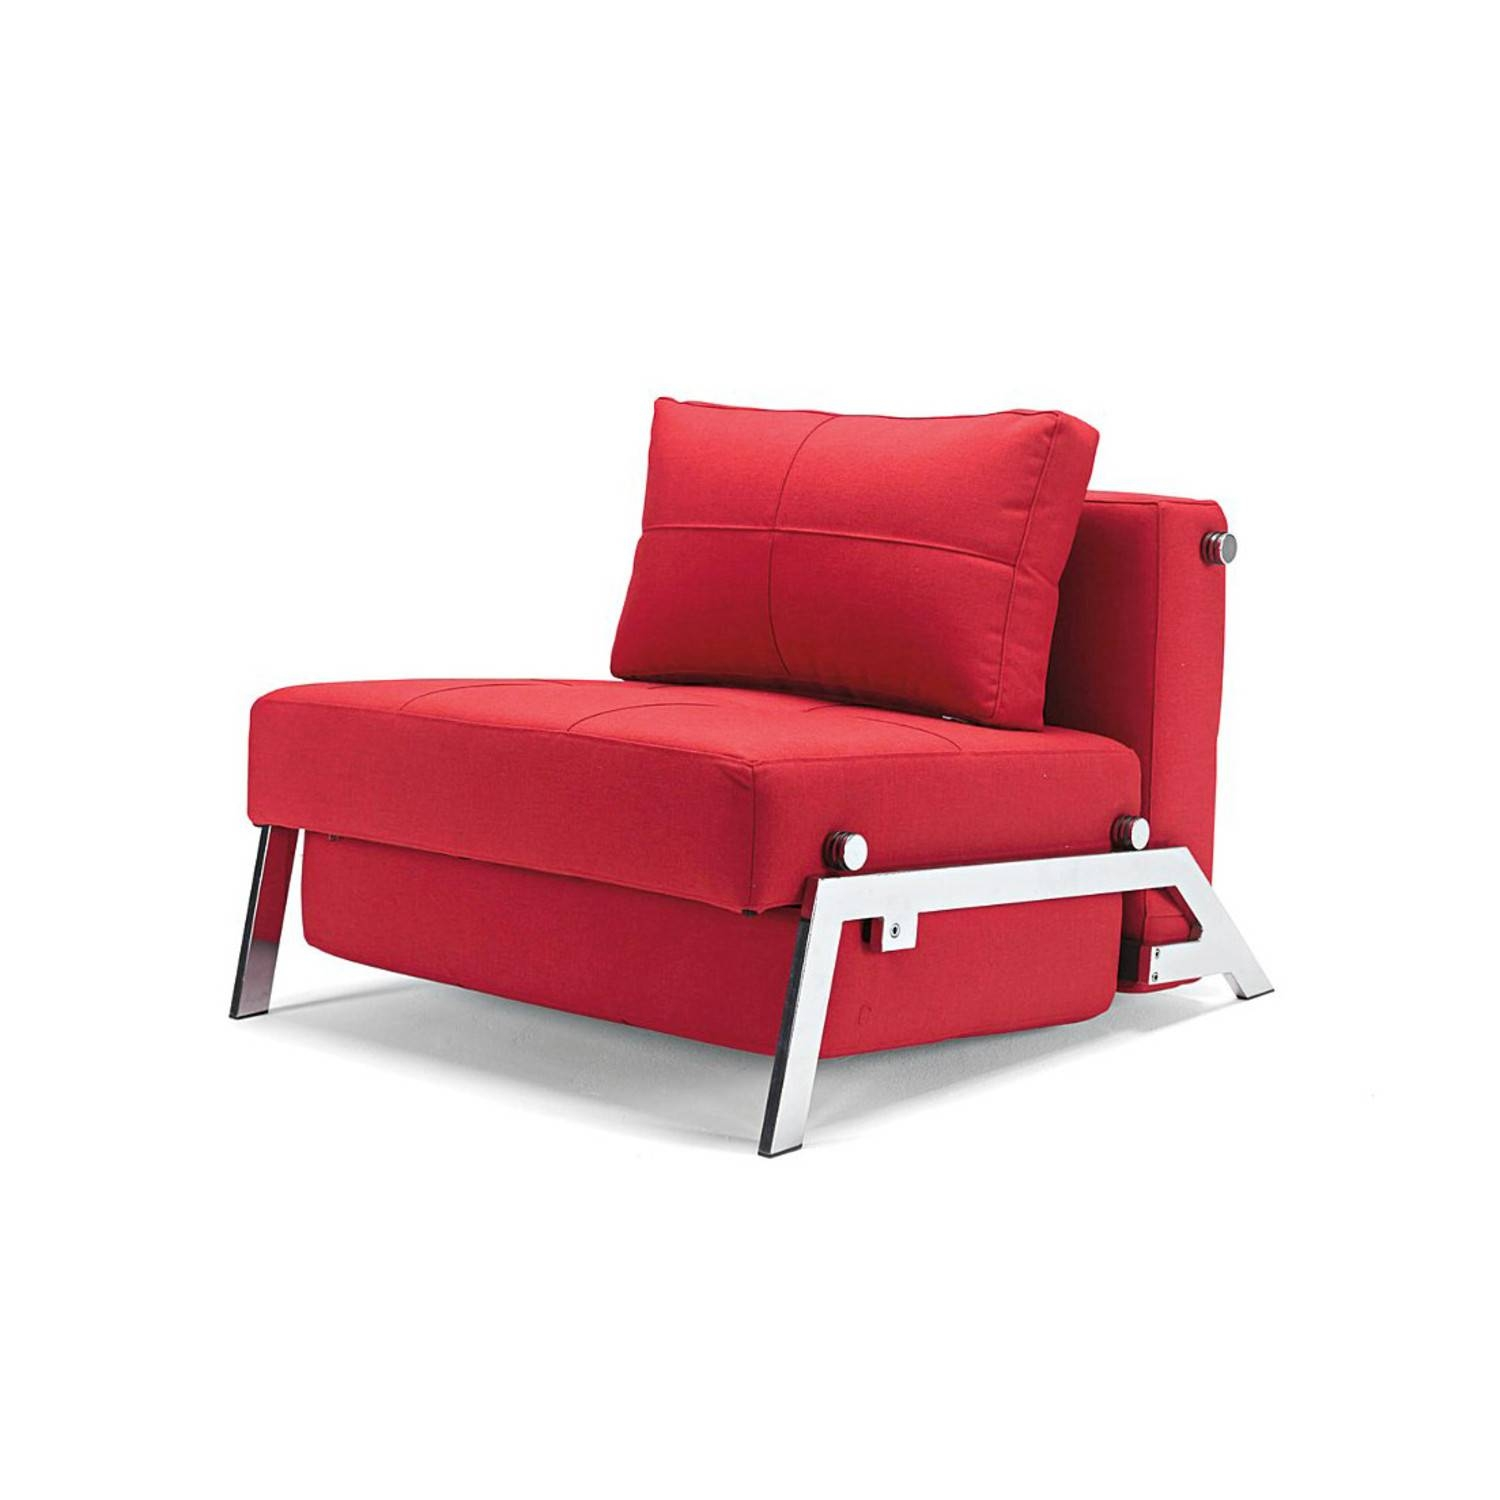 30 Inspirations of Single Chair Sofa Beds